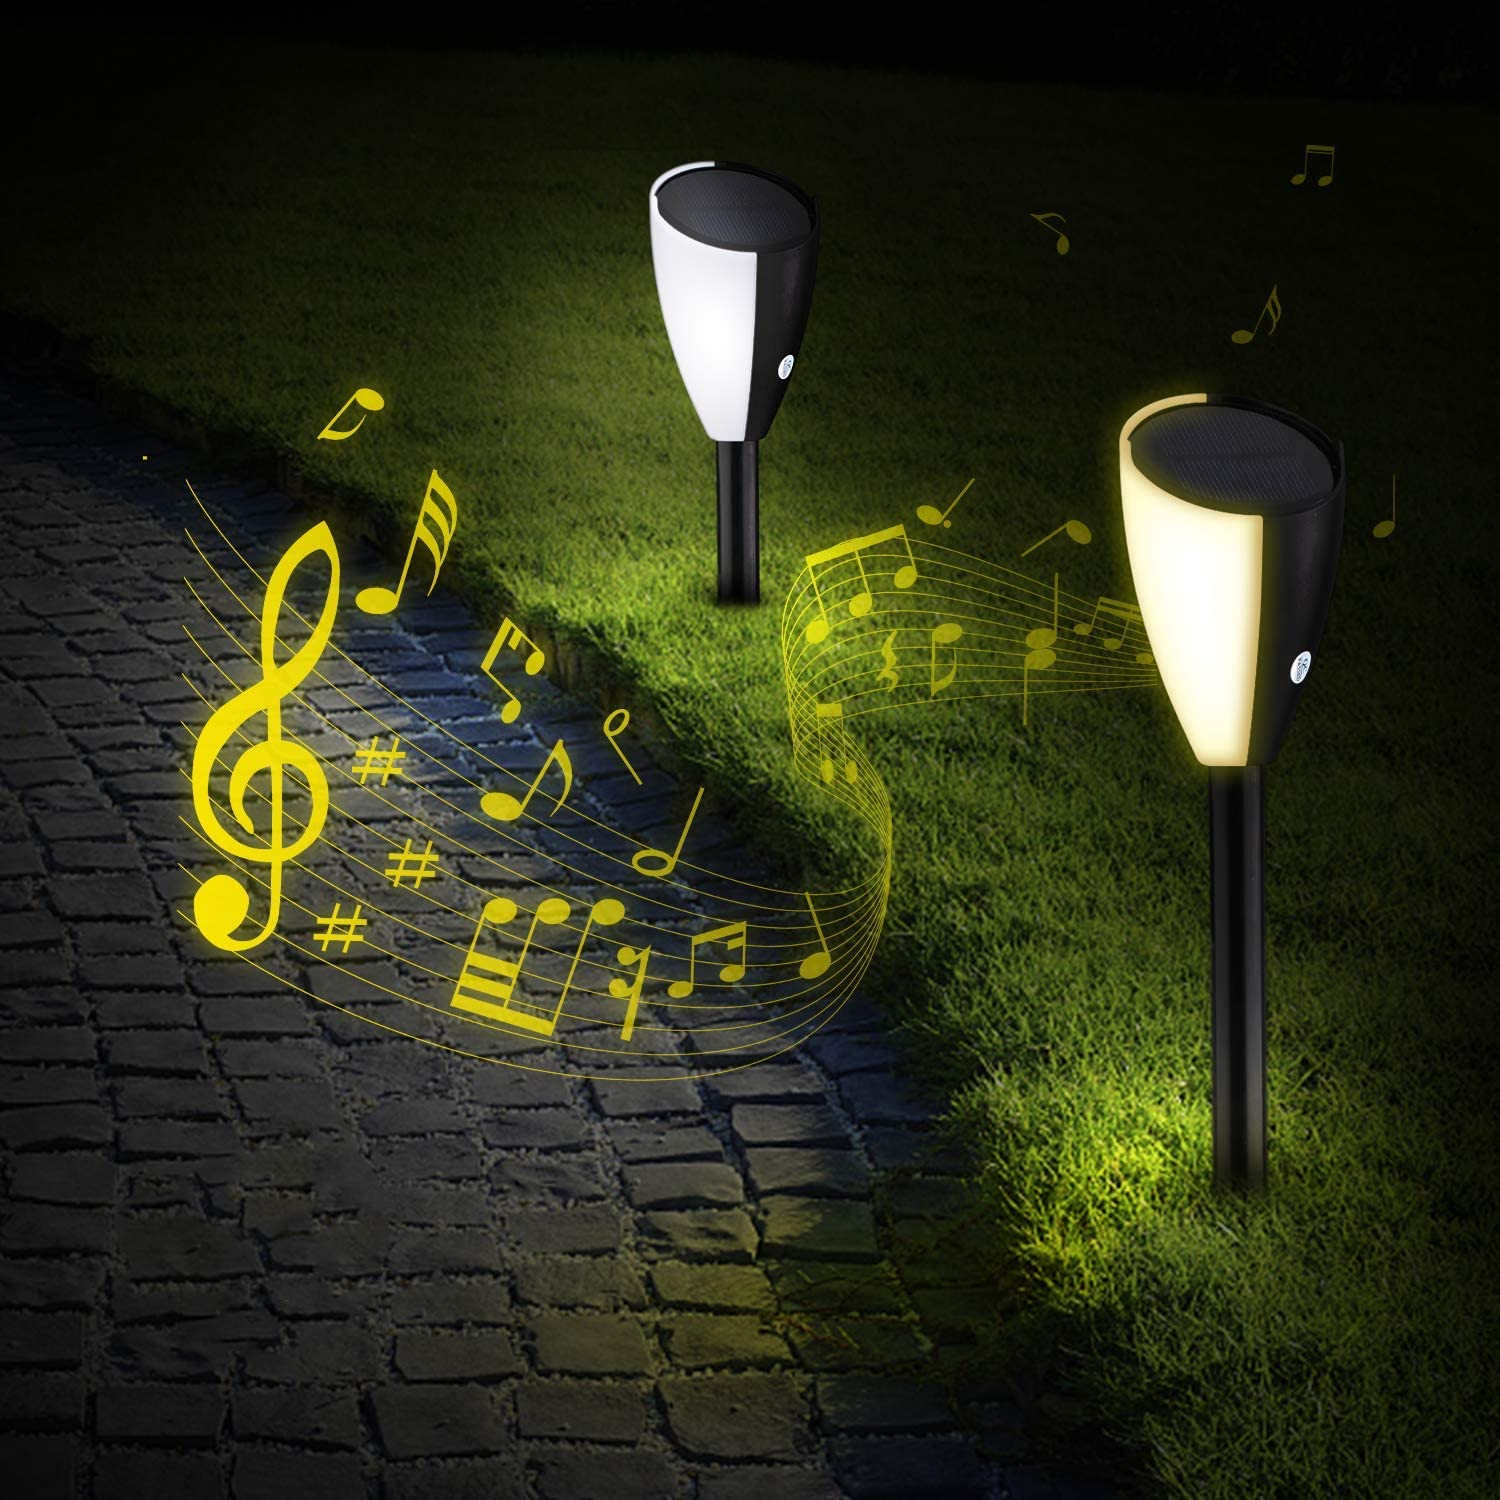 Outdoor Singing Garden Lights, Waterproof Solar Pathway Lights, Auto On/Off LED Garden Light for Patio, Lawn, Yard and Landscape - 2 Pack, Warm/White Light Switchable